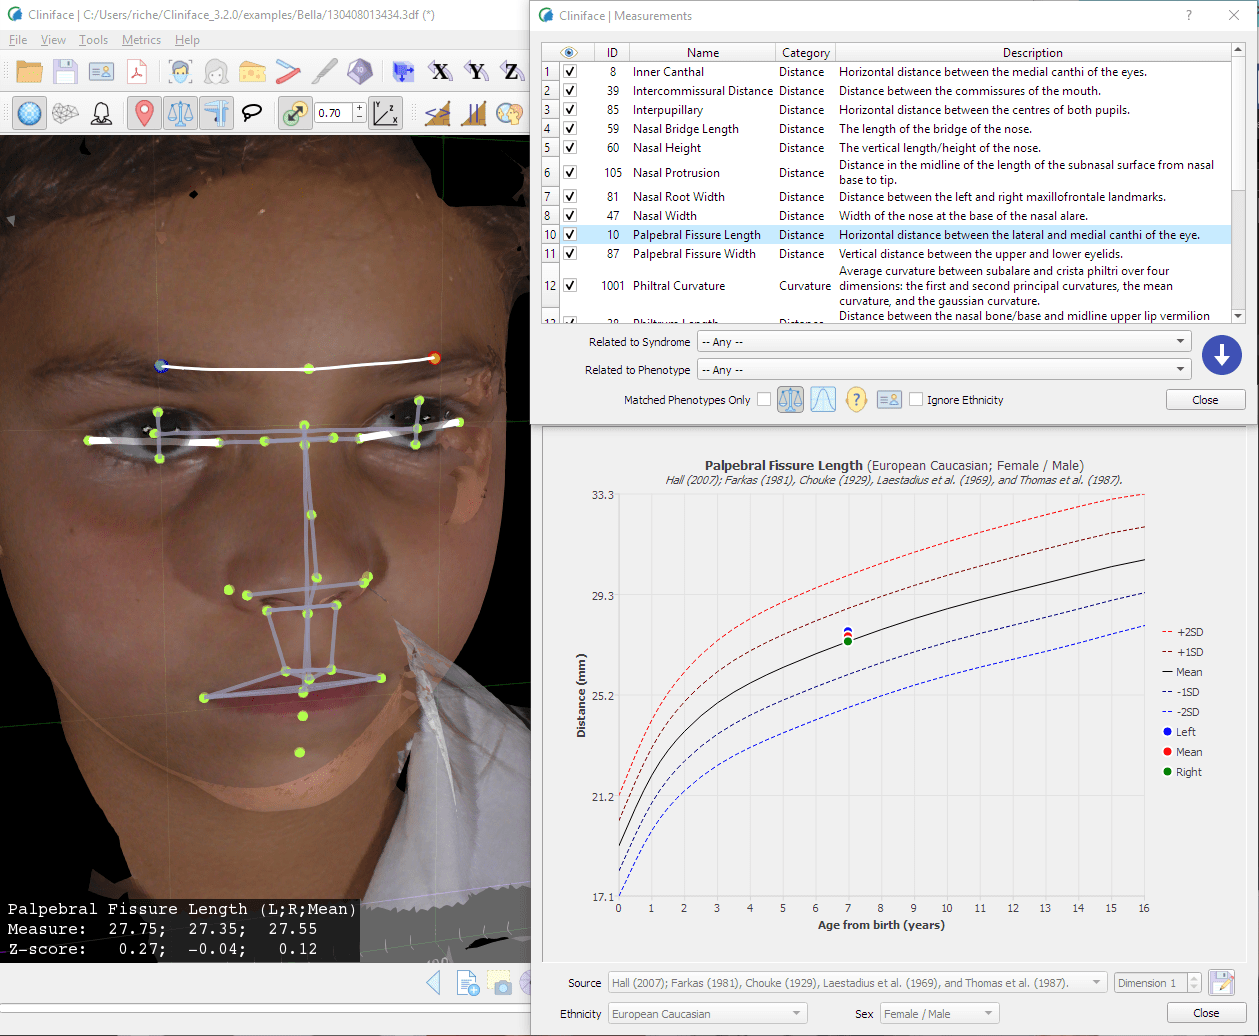 Cliniface: Open source 3D Facial Image Visualization and Analysis Software